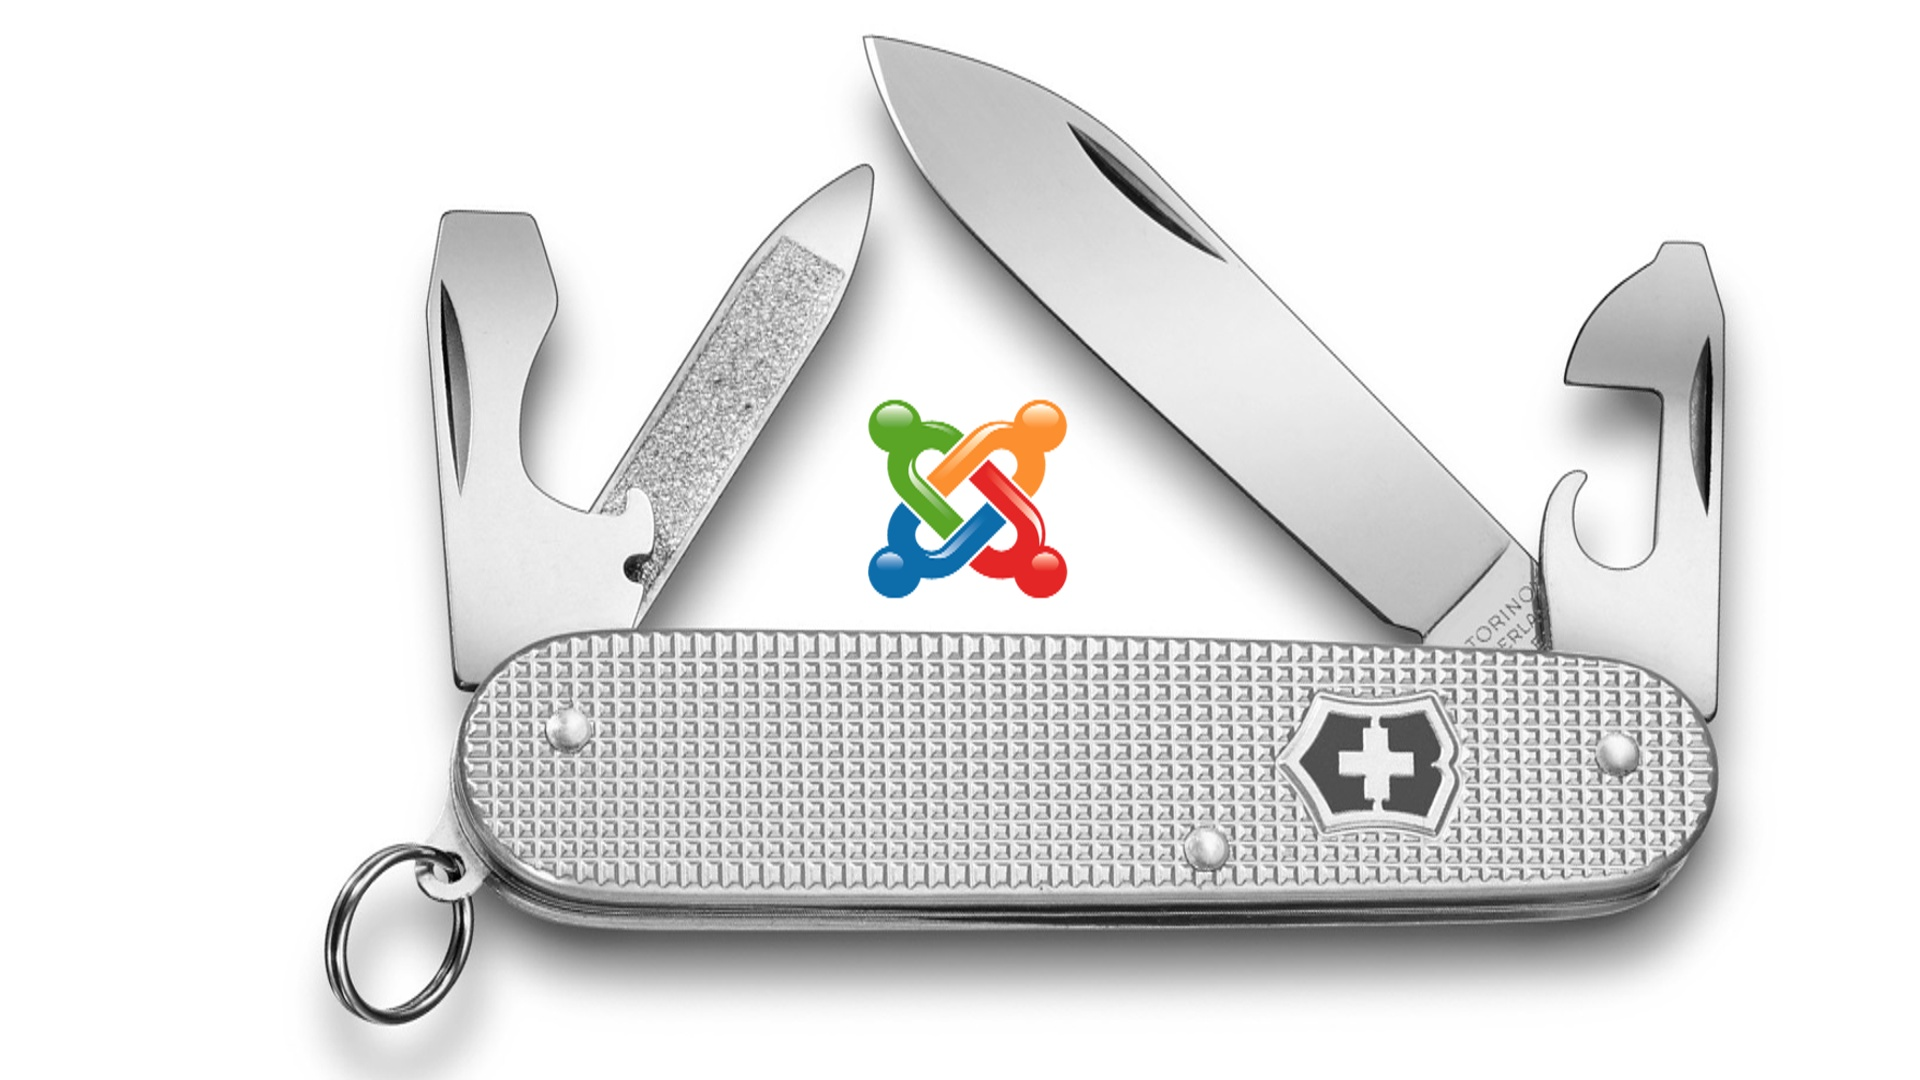 Joomla Extension Articles - Blog, Info and more